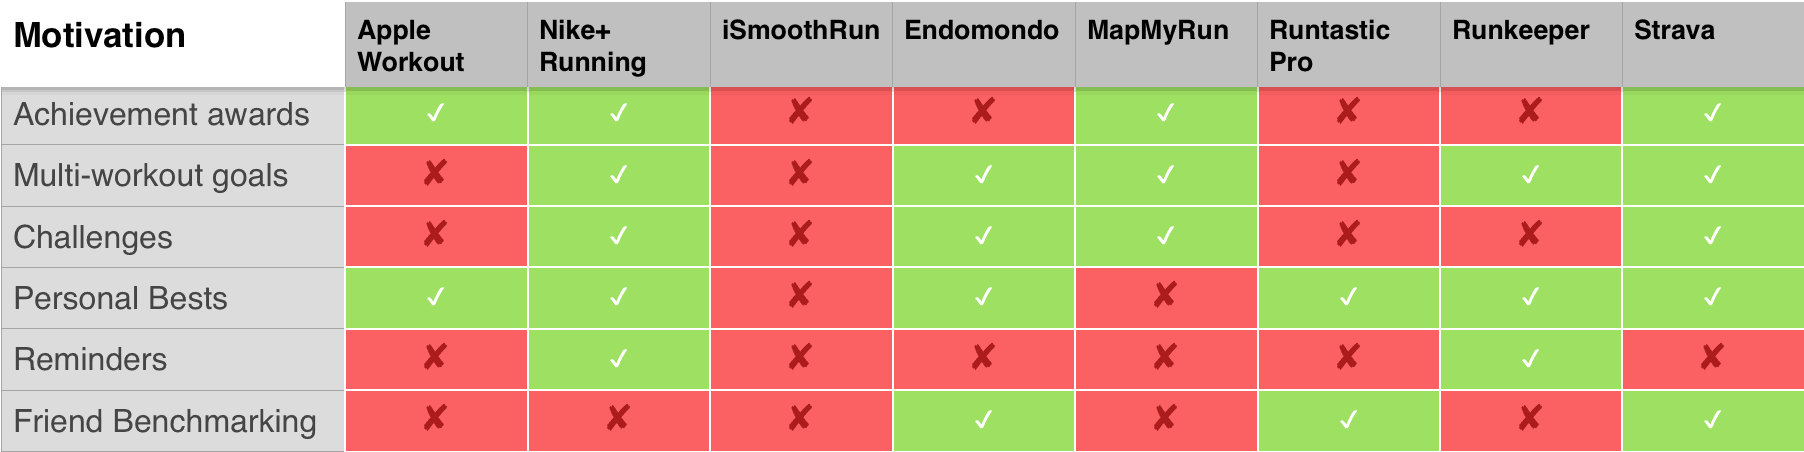 Running apps shootout: How to choose the right one for you